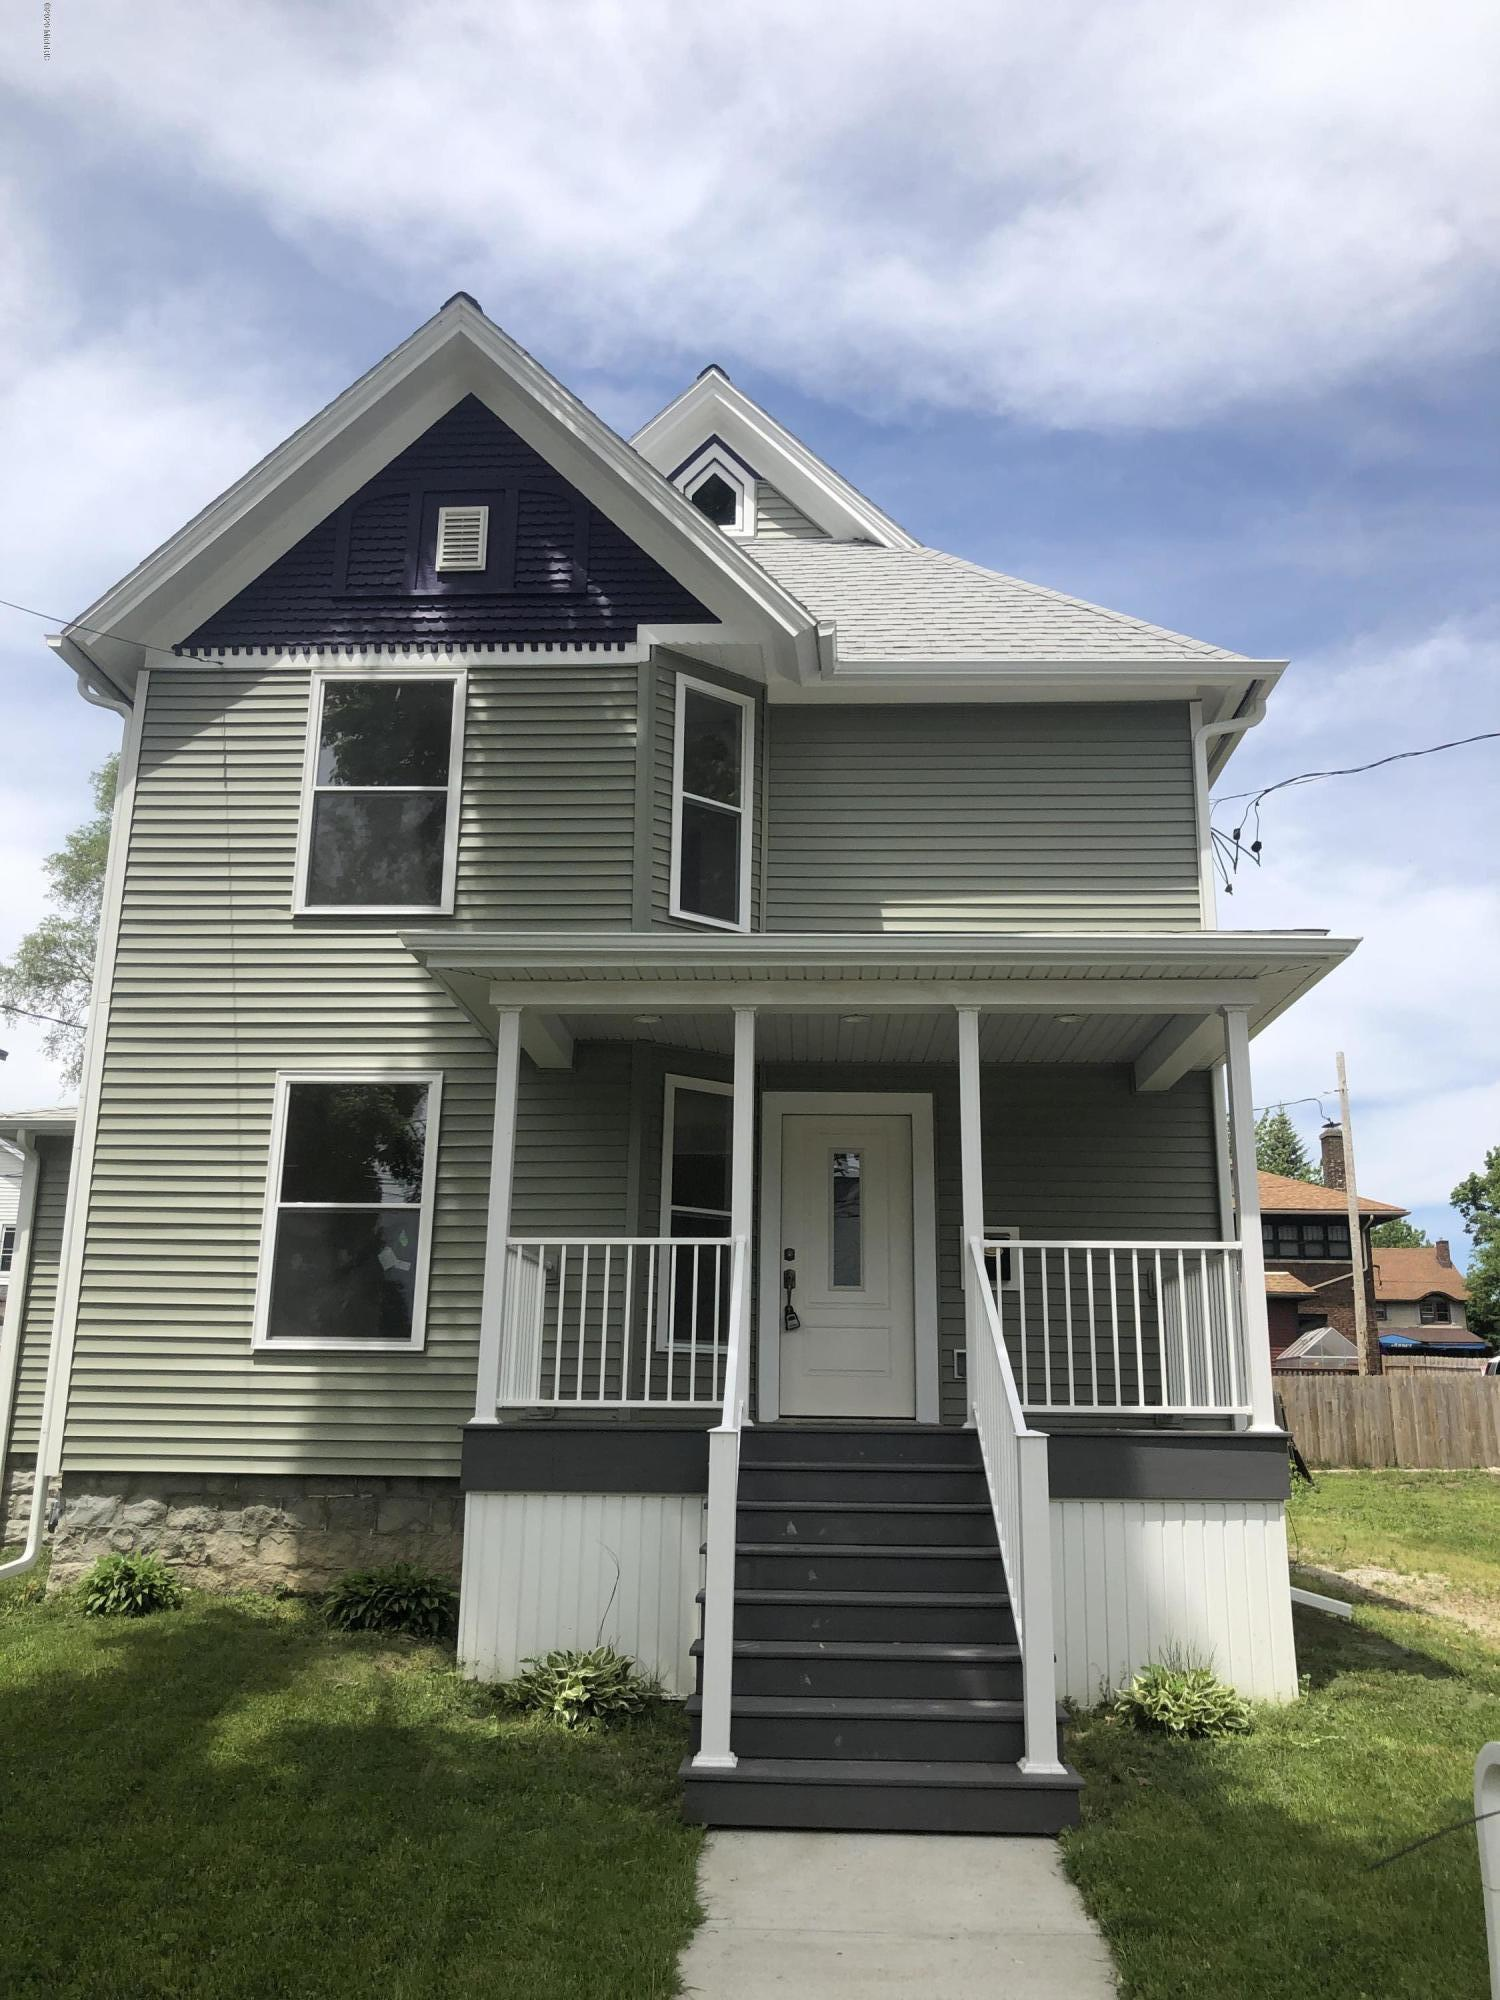 primary photo for 305 Perry Street, Albion, MI 49224, US